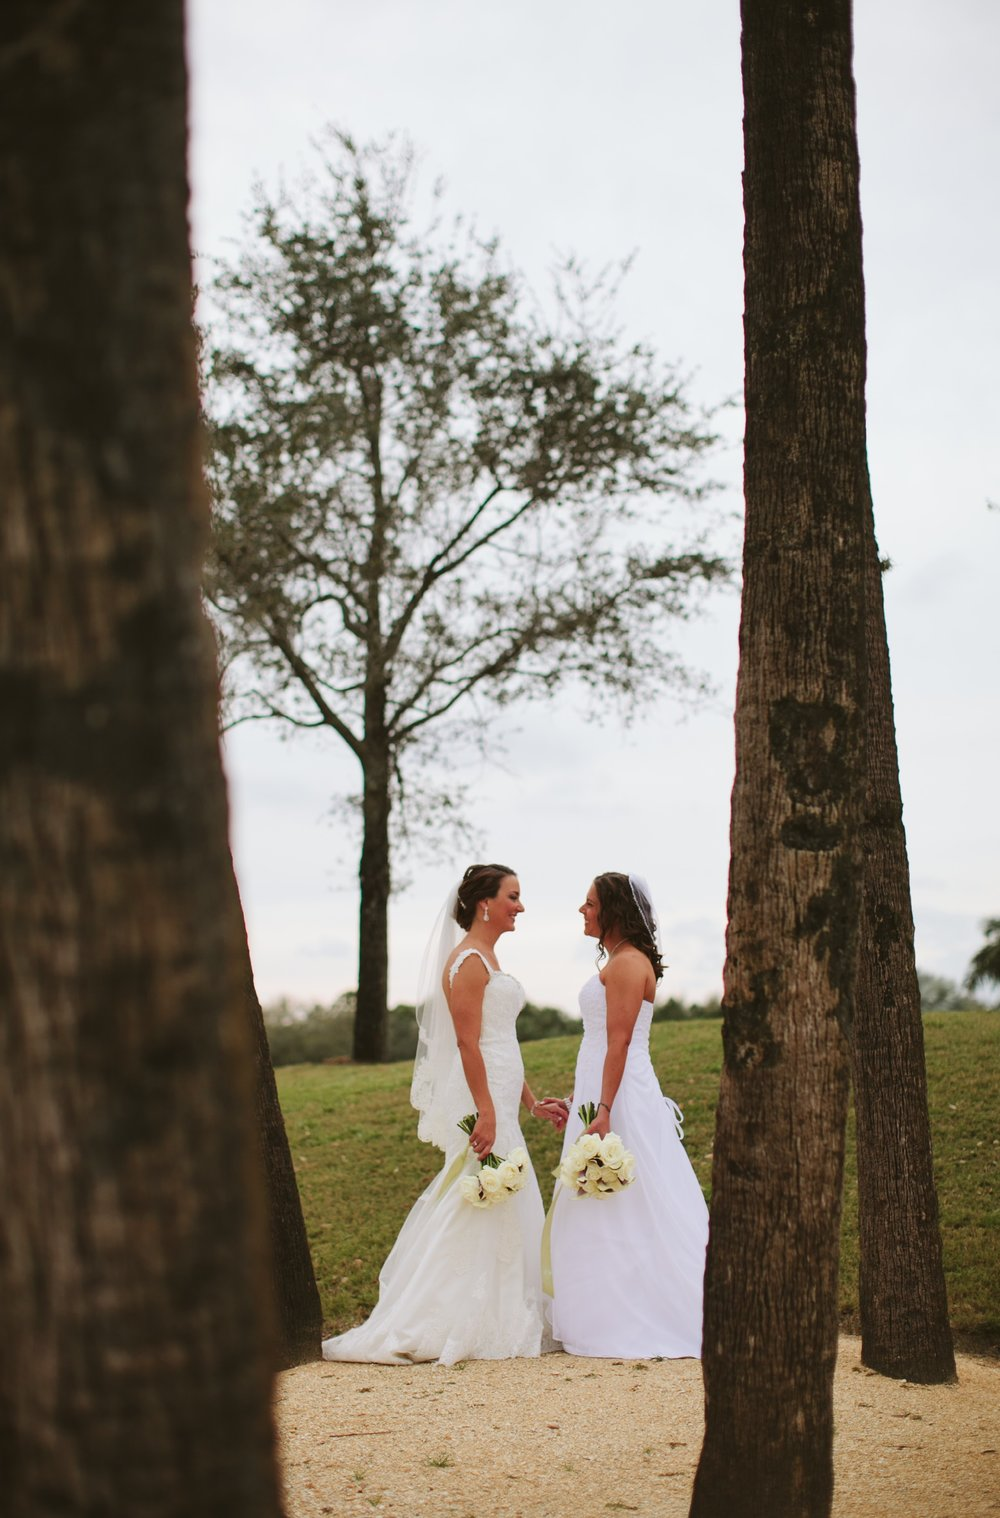 Kim + Monica's Mizner Country Club Wedding in Delray Beach46.jpg